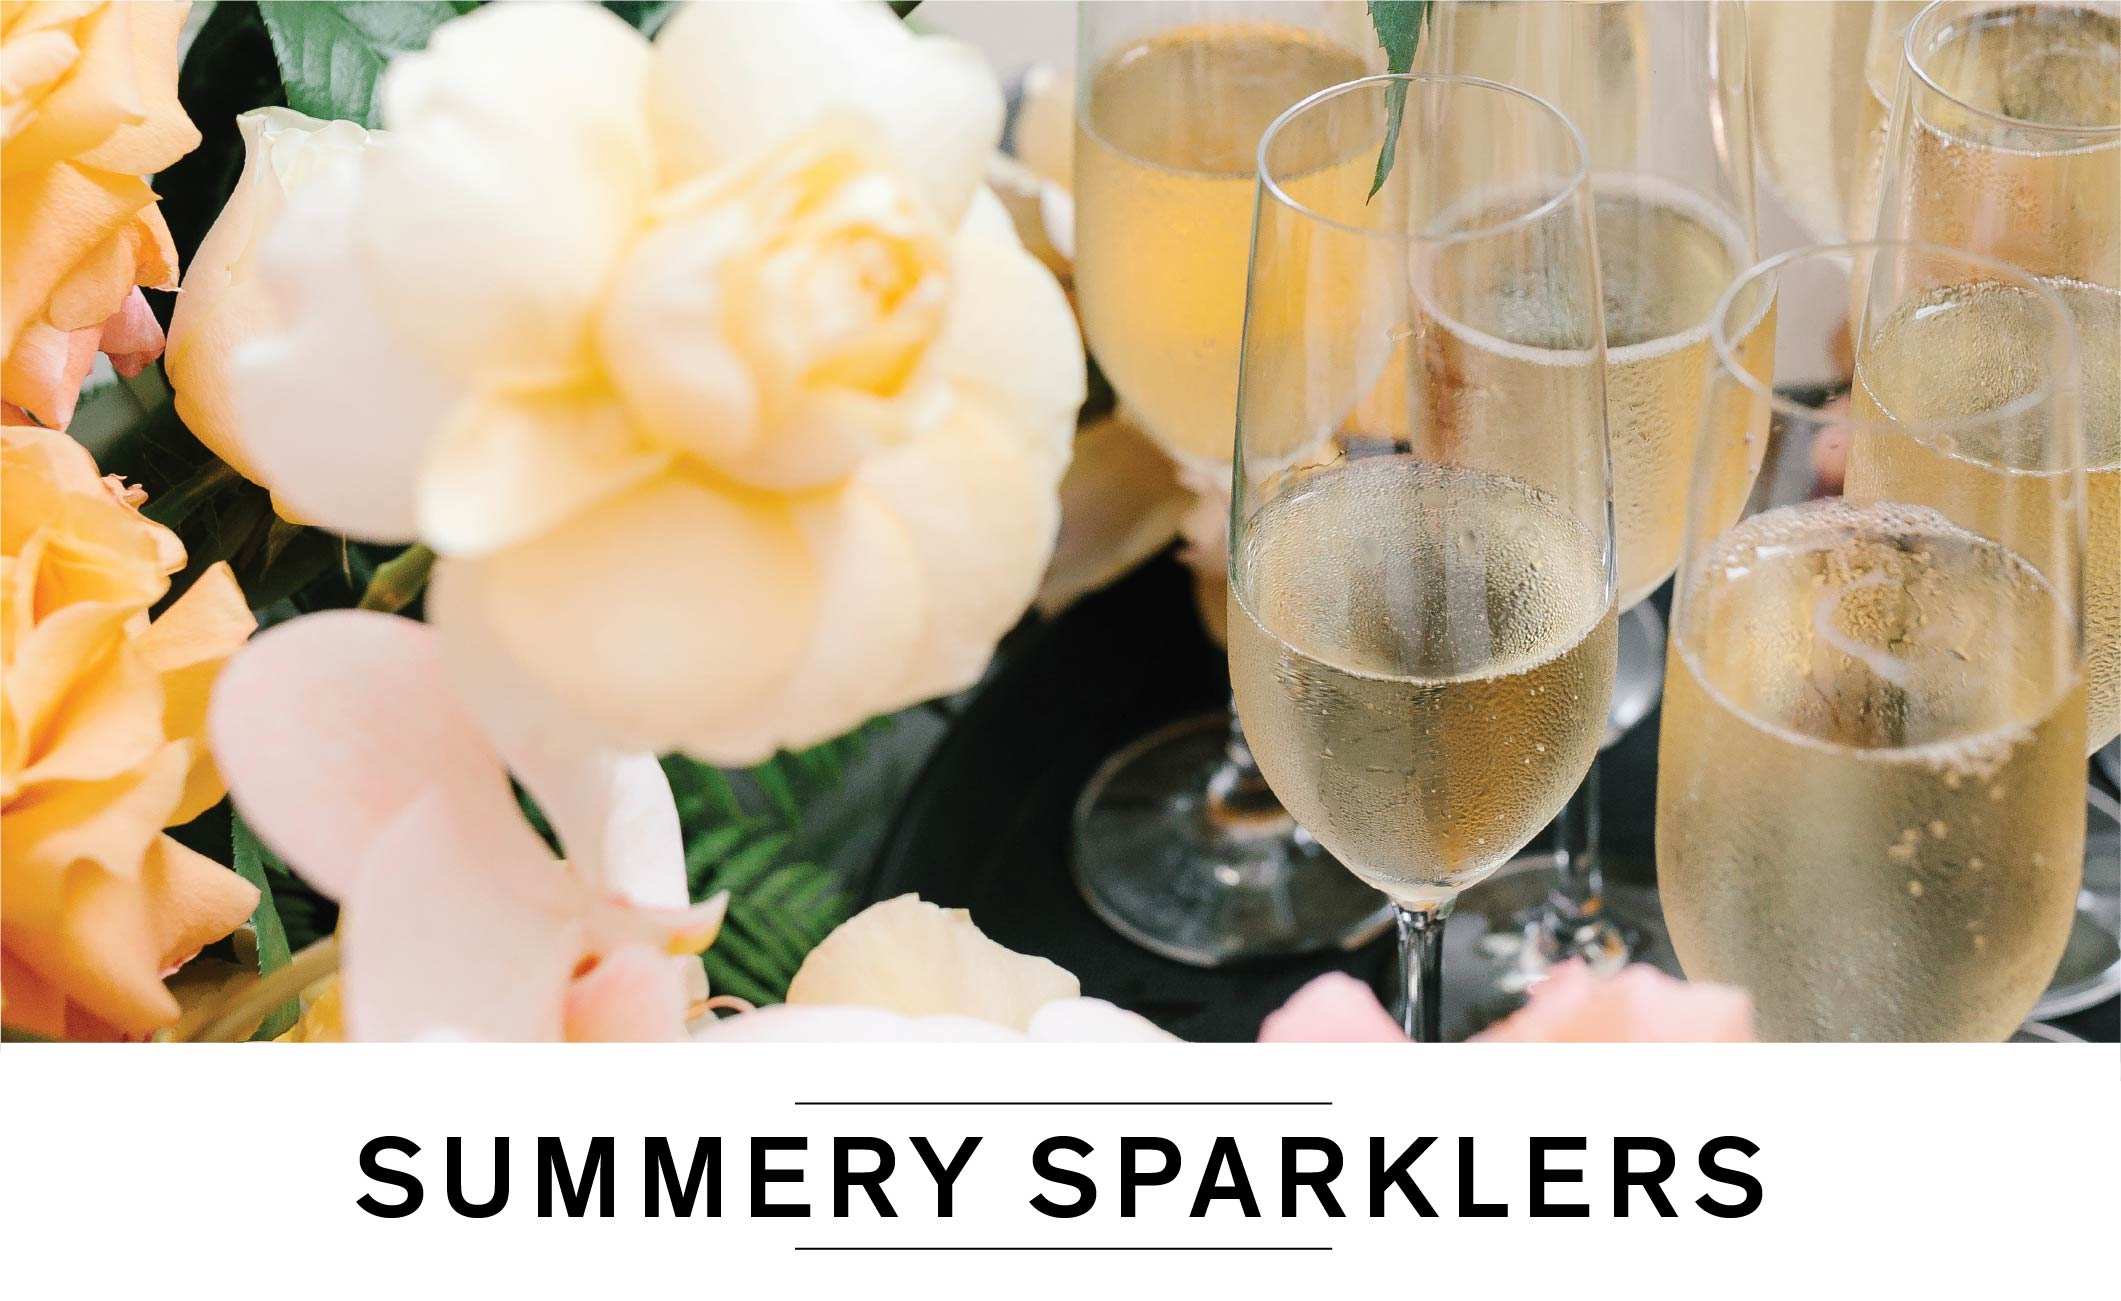 SUMMERY SPARKLERS